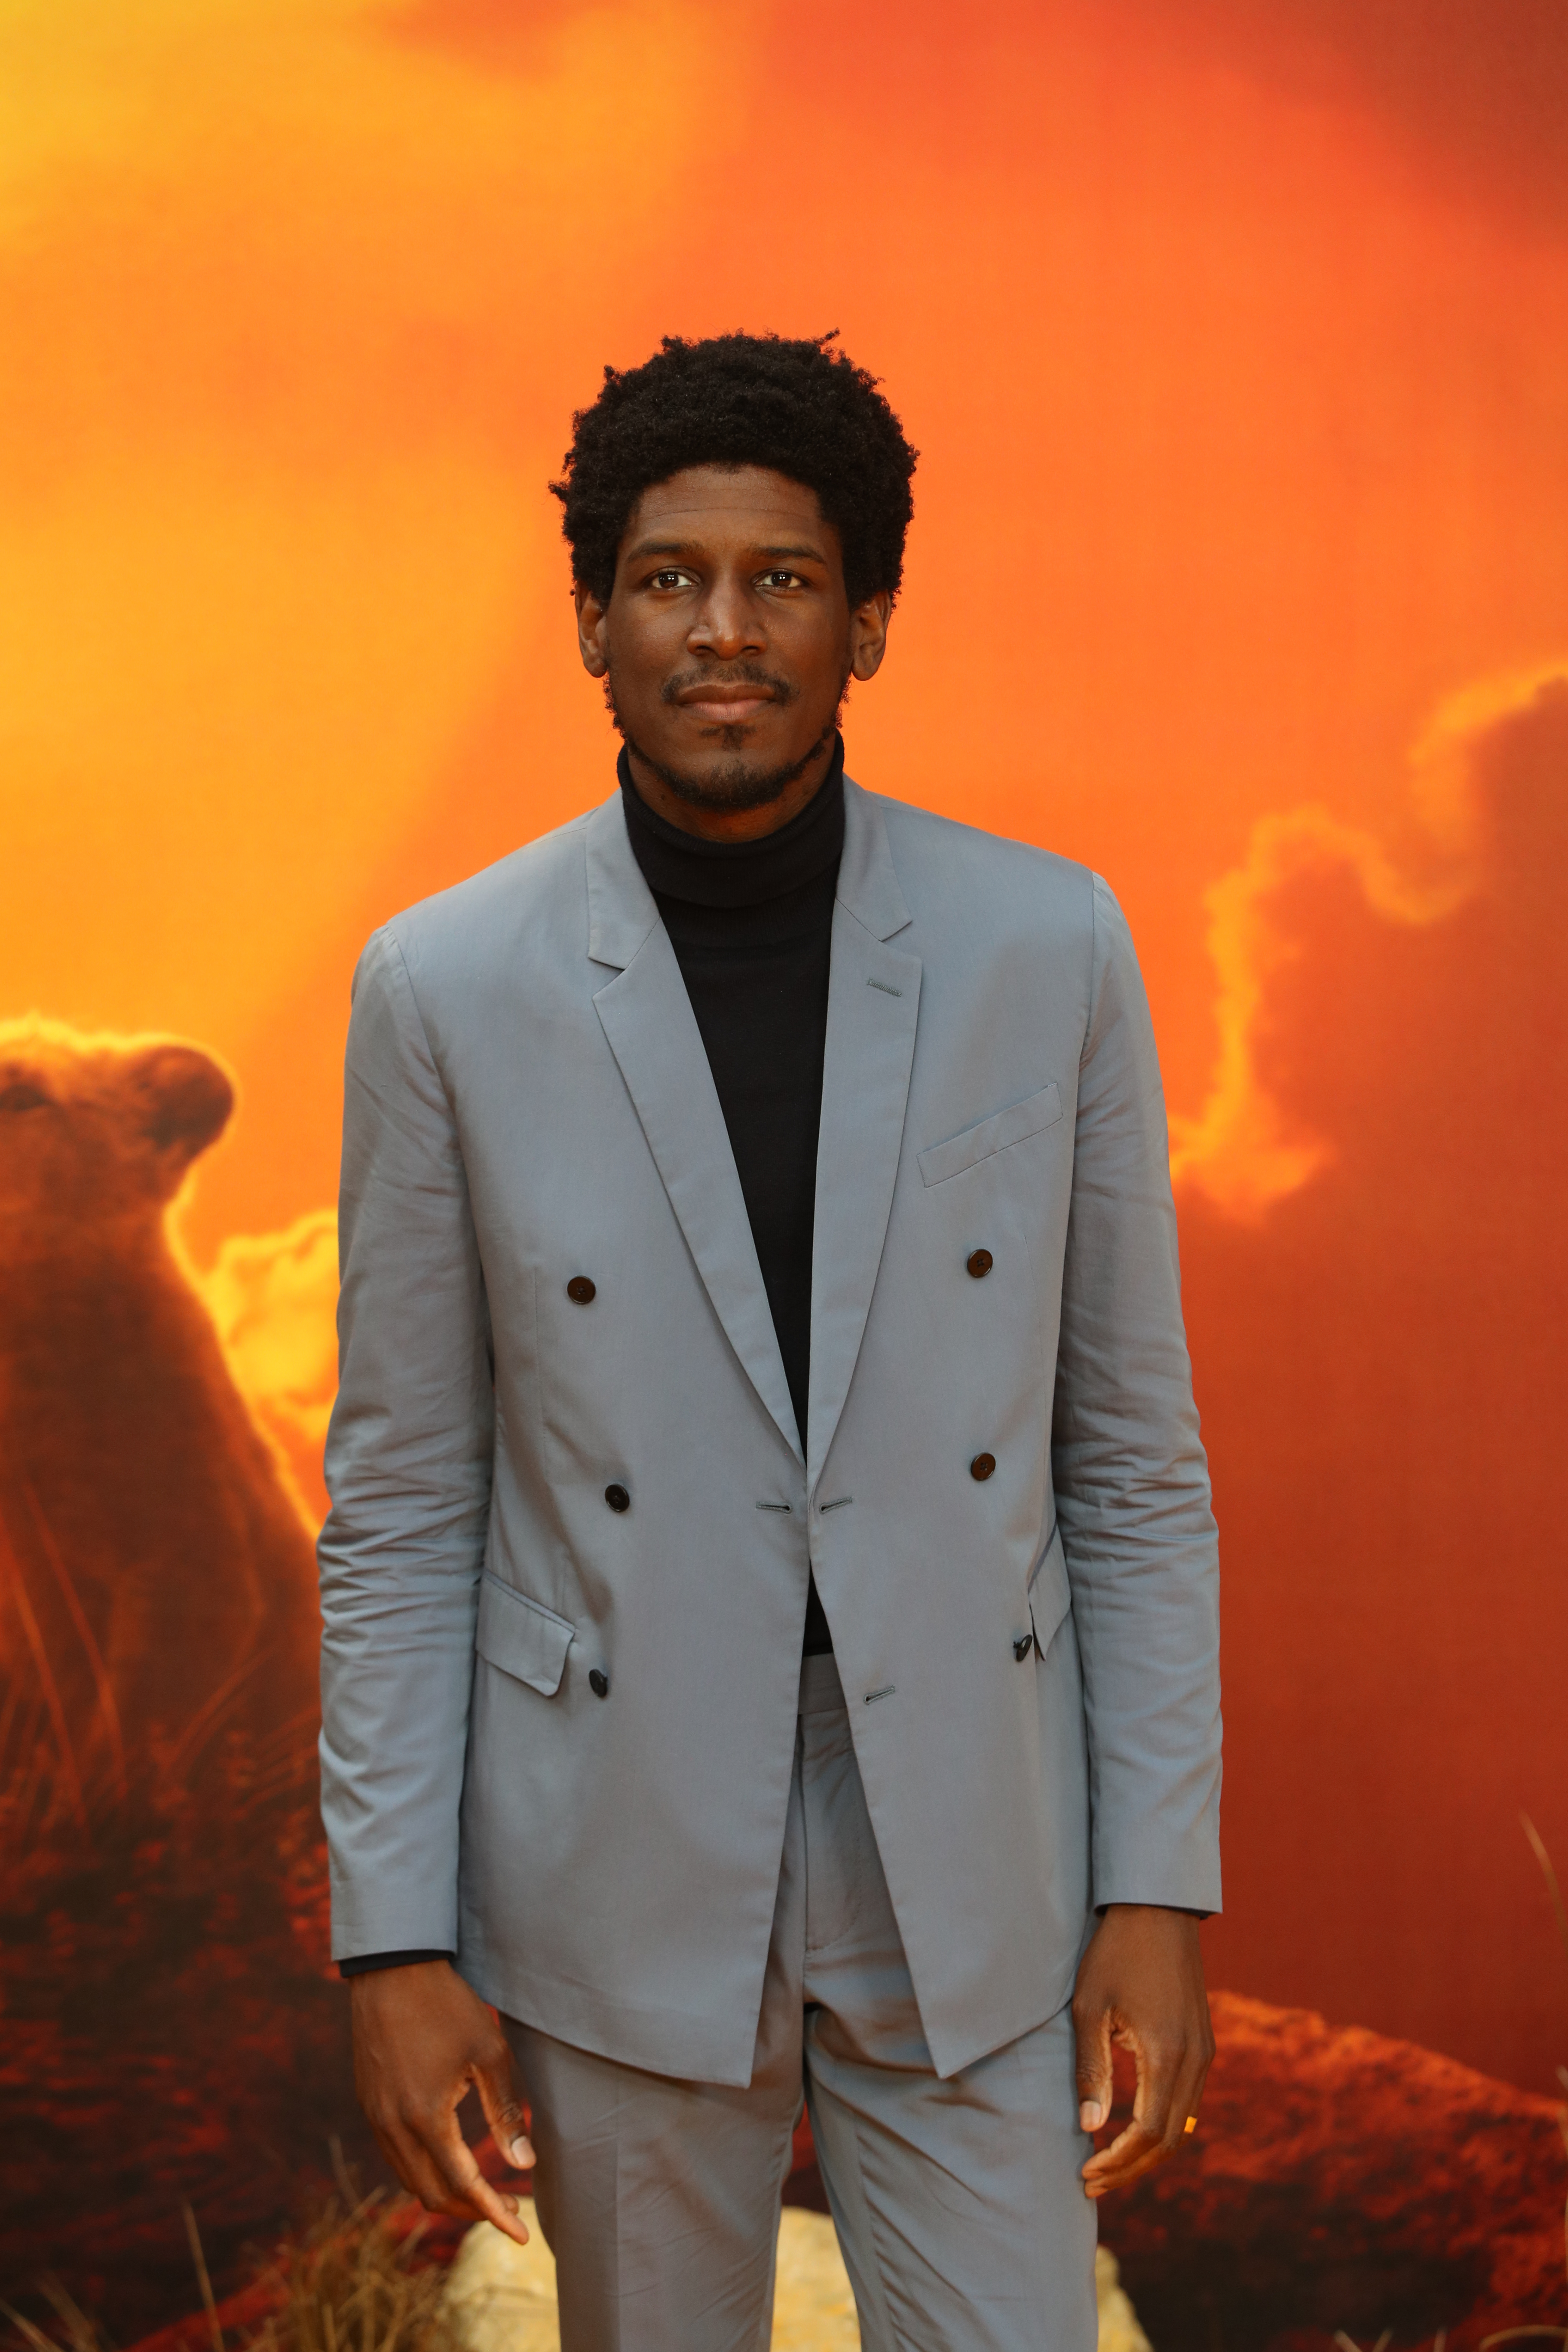 Labrinth attends the European Premiere of Disney's The Lion King at the Odeon Leicester Square, London.